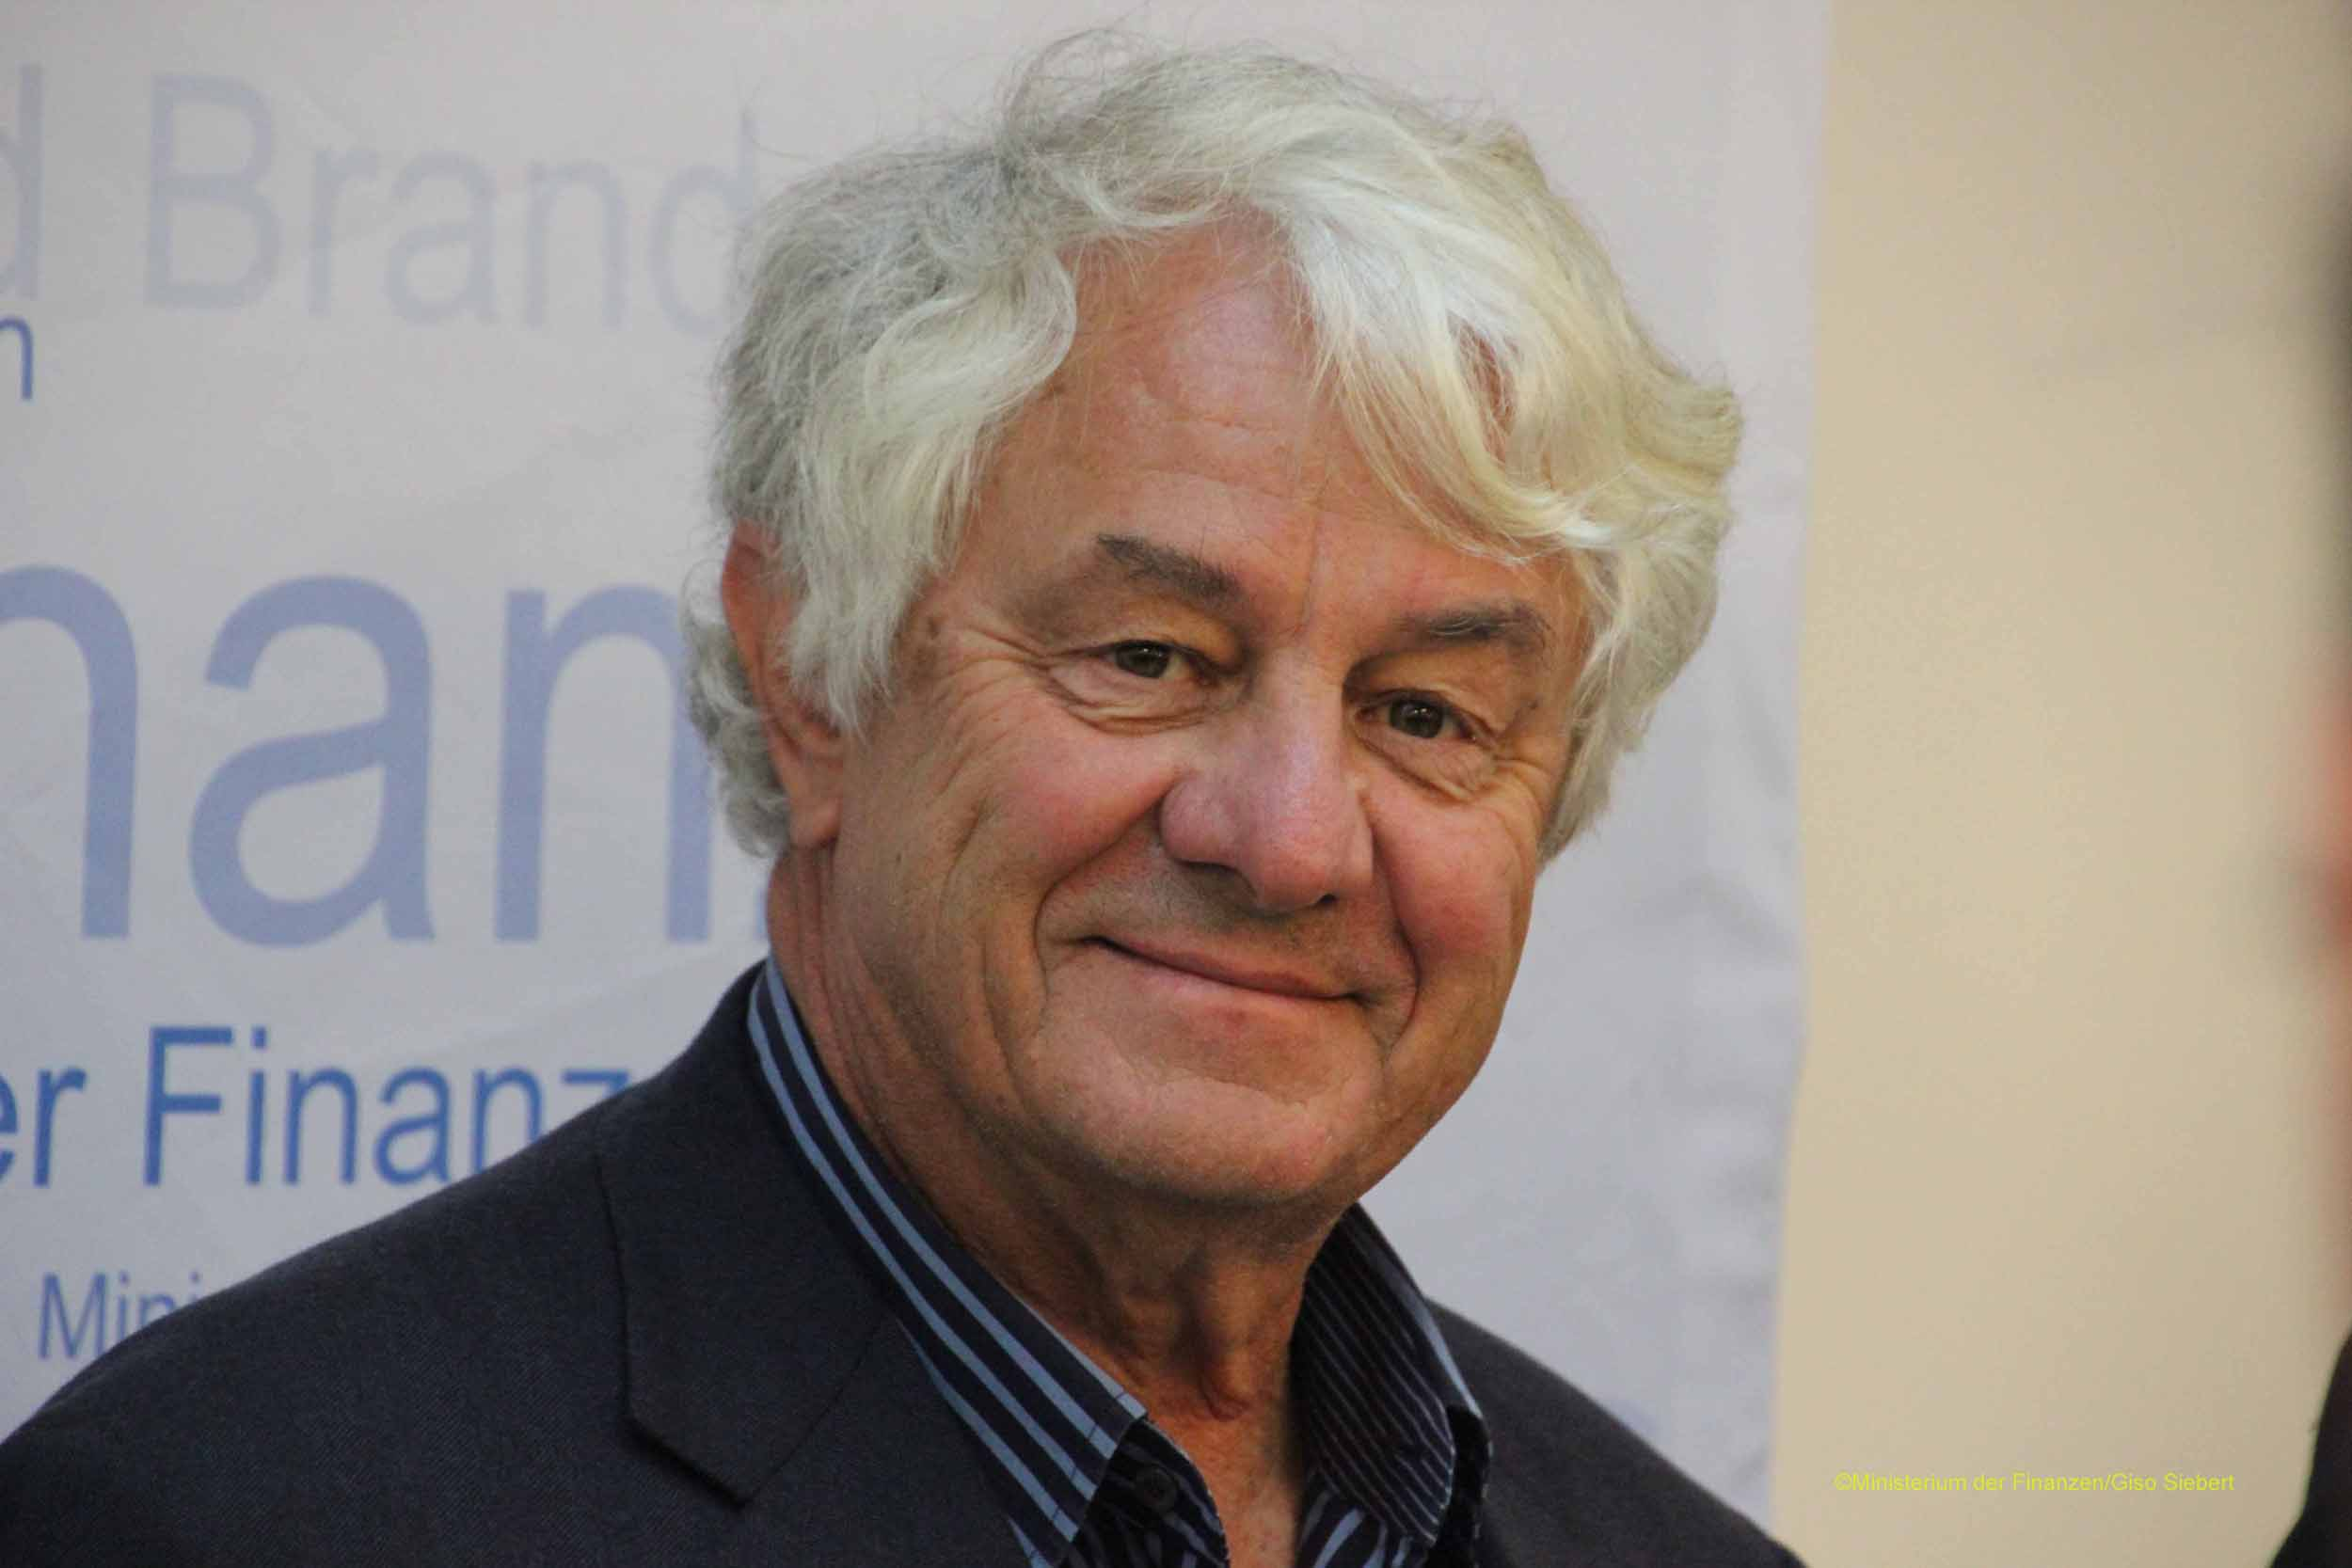 Hasso Plattner earned a  million dollar salary, leaving the net worth at 11400 million in 2017